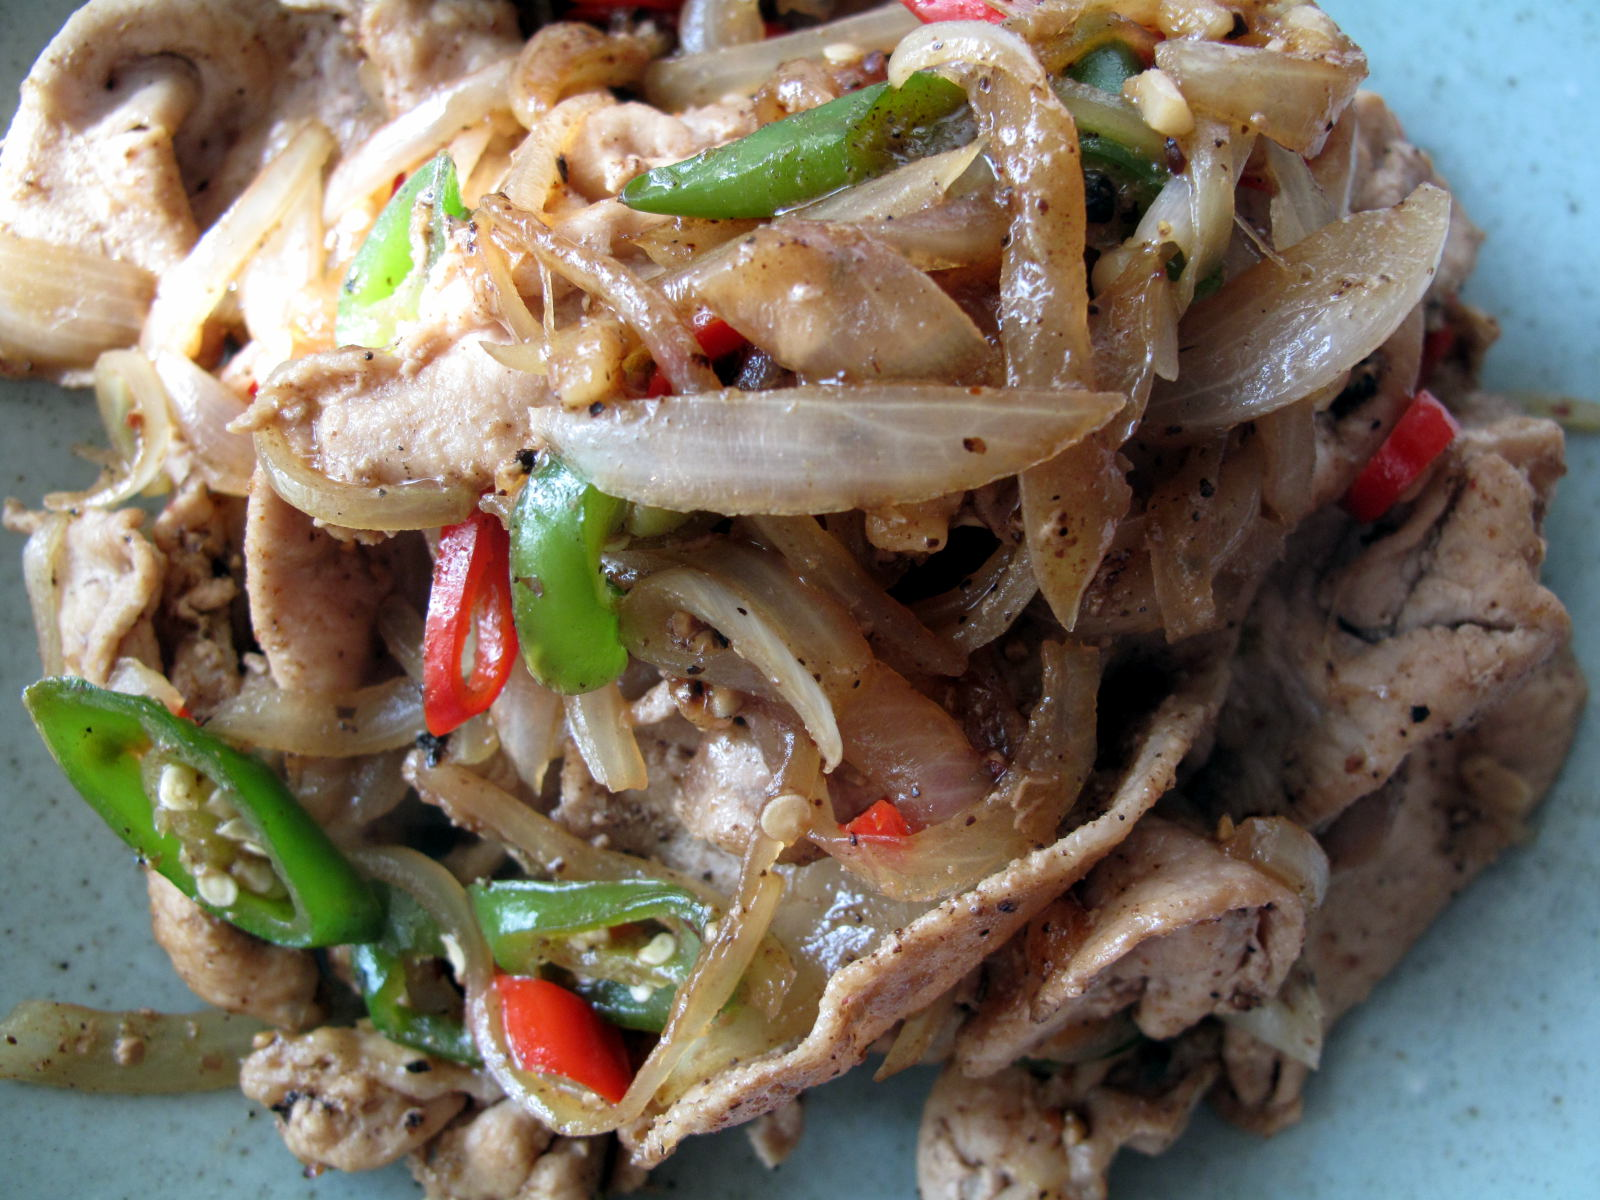 Stir-fried Pork with Chili